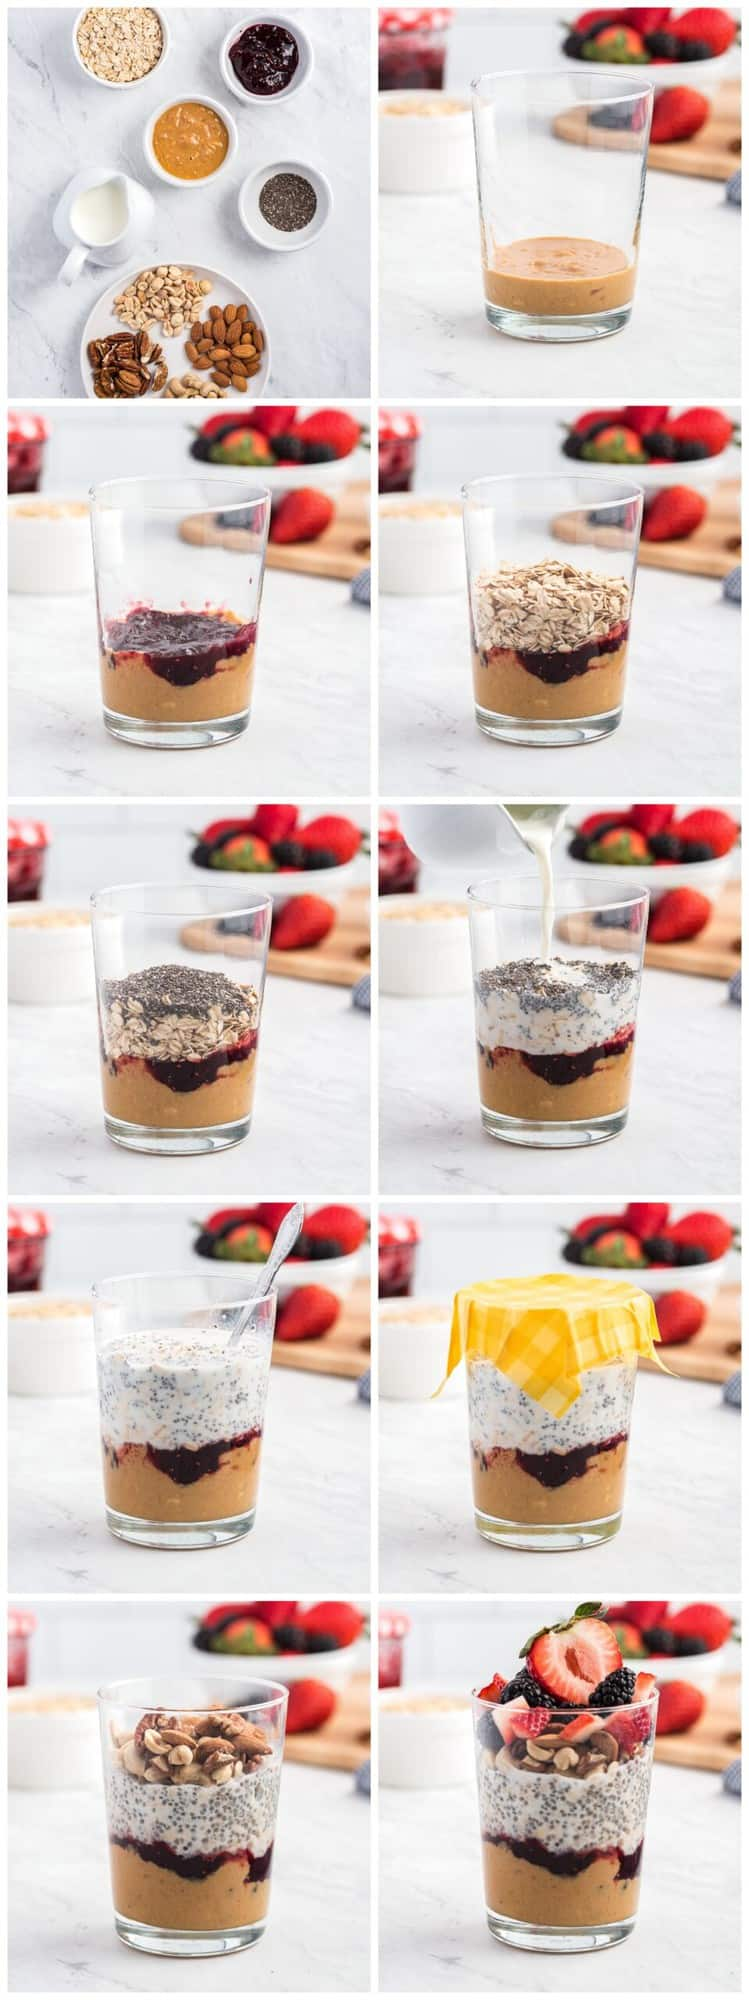 step by step photos of how to make PBJ overnight oats